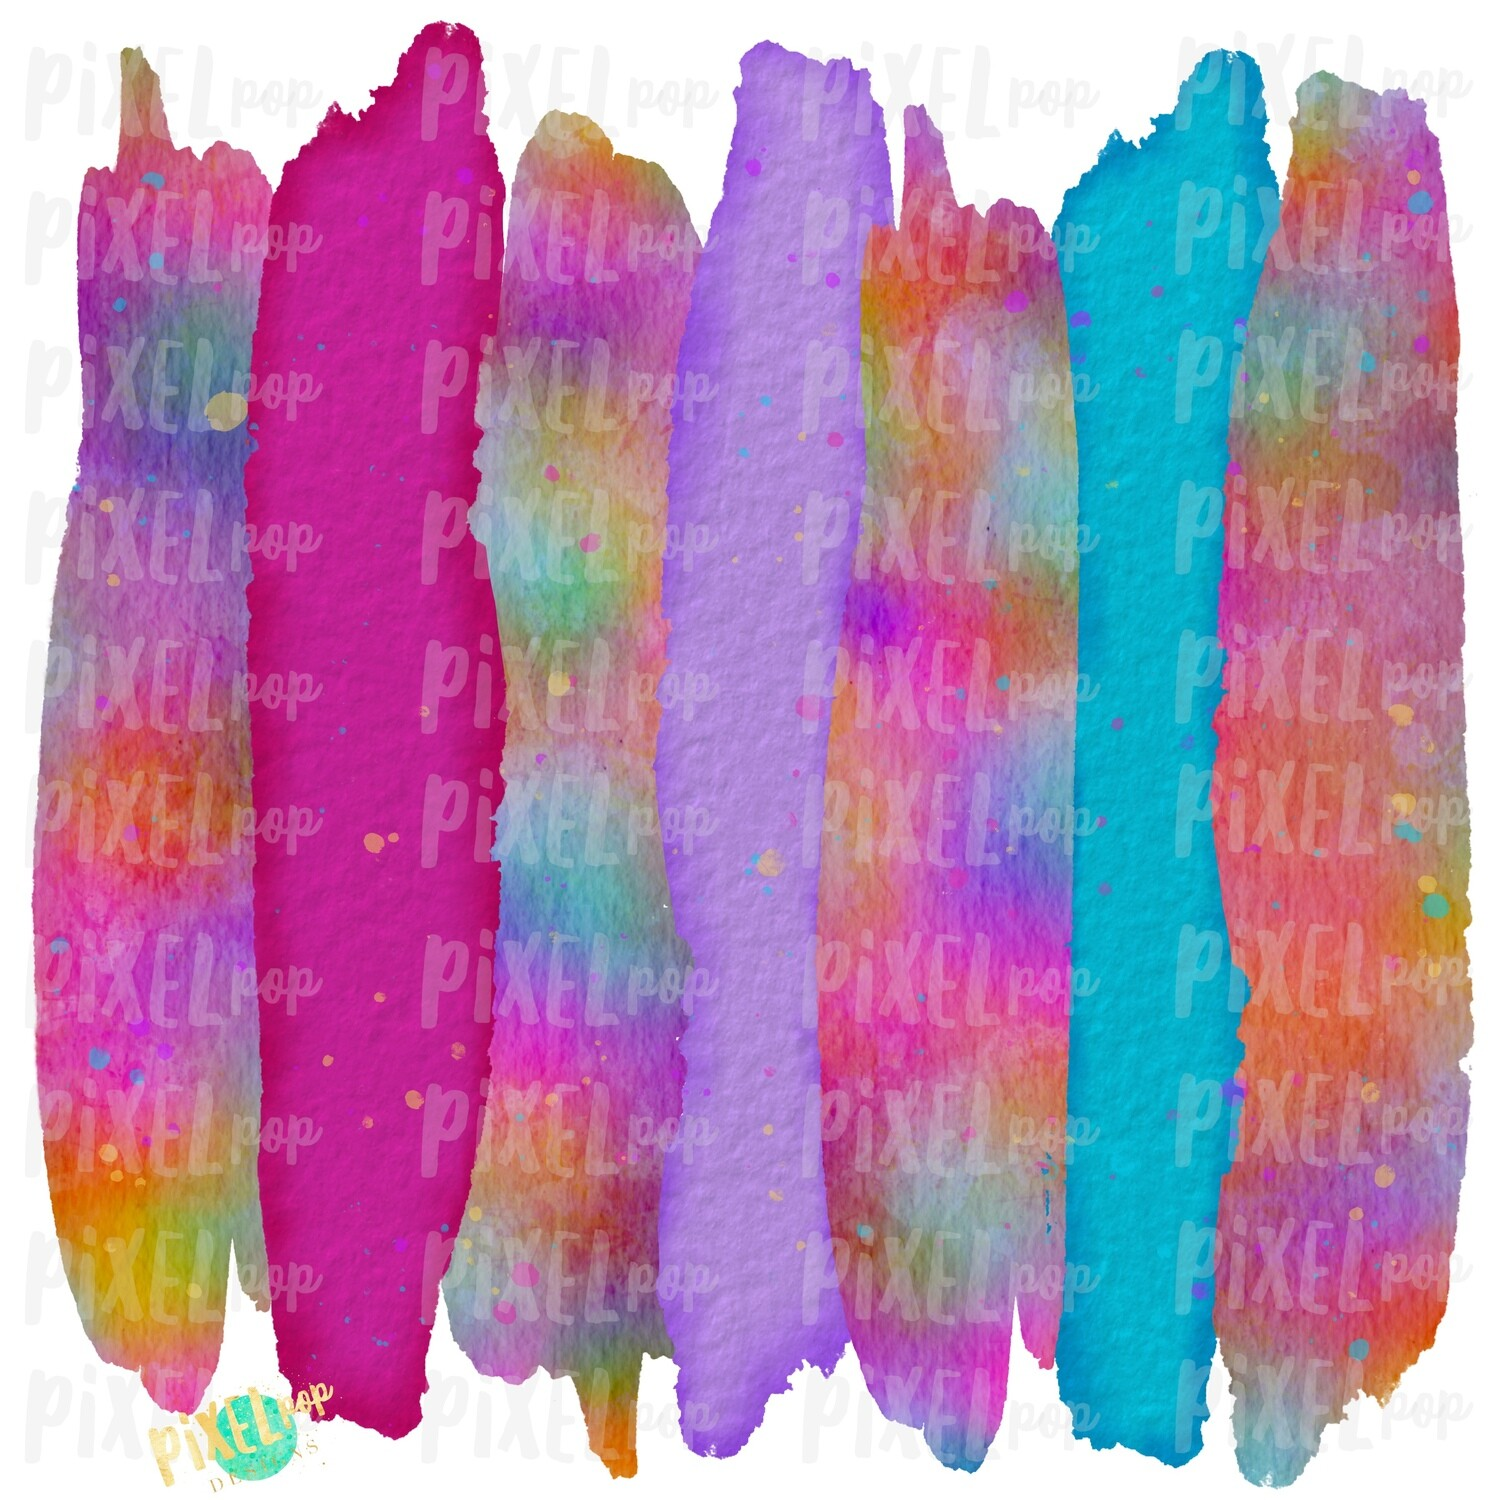 Tie Dye Watercolor Brush Stroke Background Sublimation PNG | Paint Strokes | Hand Painted | Digital Background | Printable